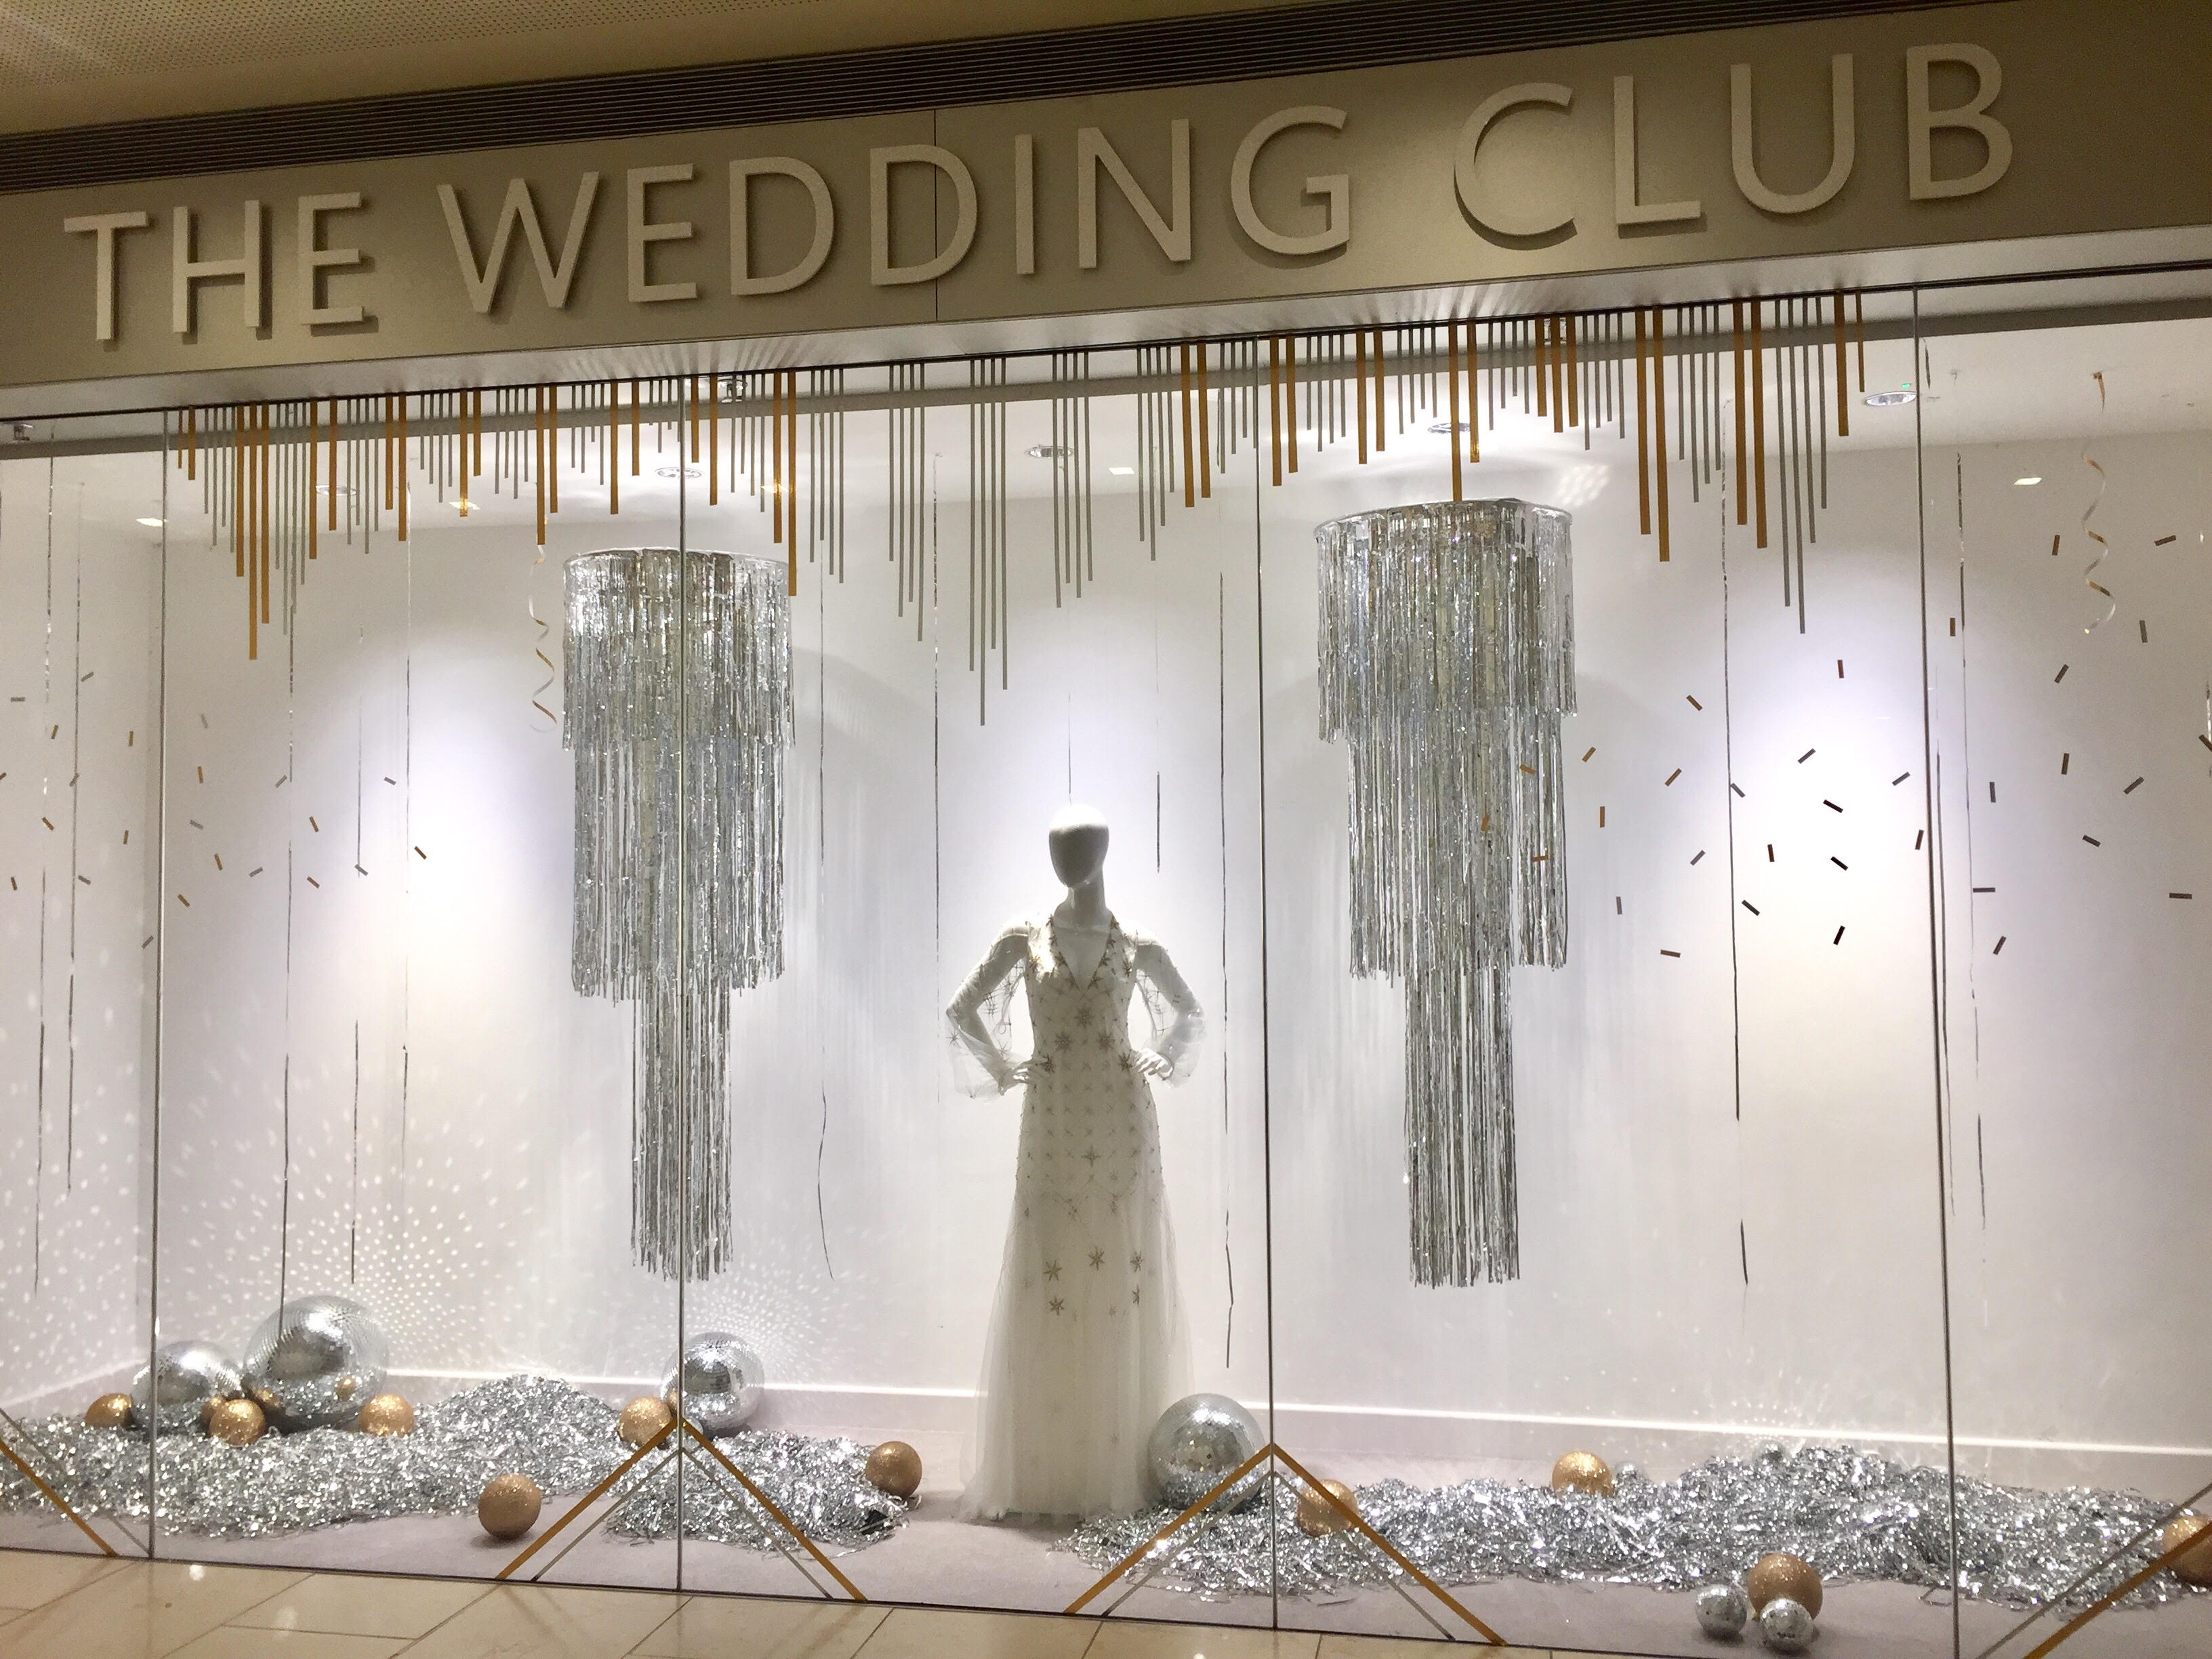 The Wedding Club Festive Display